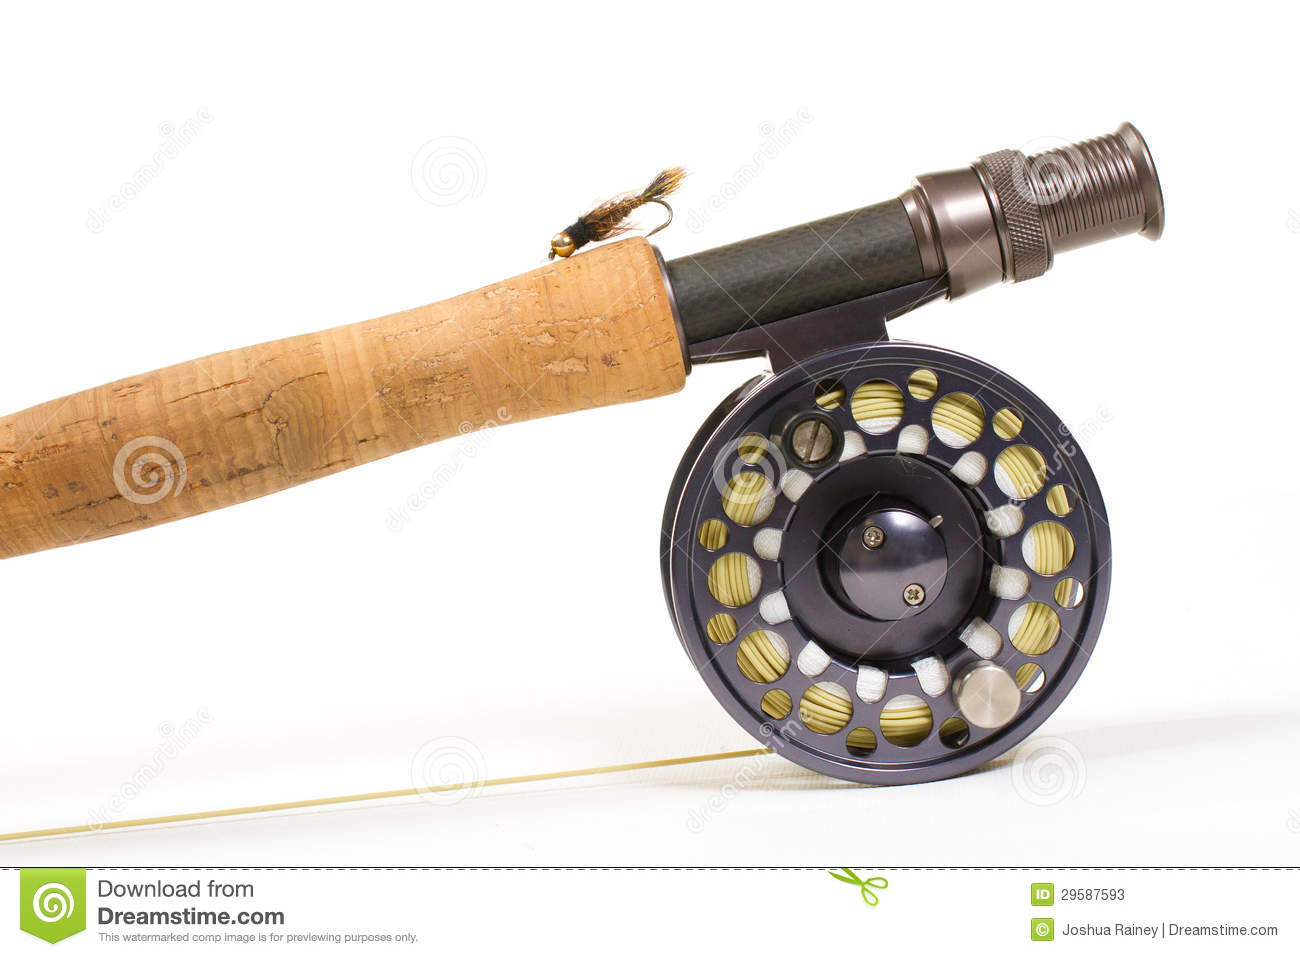 Fly fishing gear rod and reel stock photos image 29587593 for How many fishing rods per person in texas